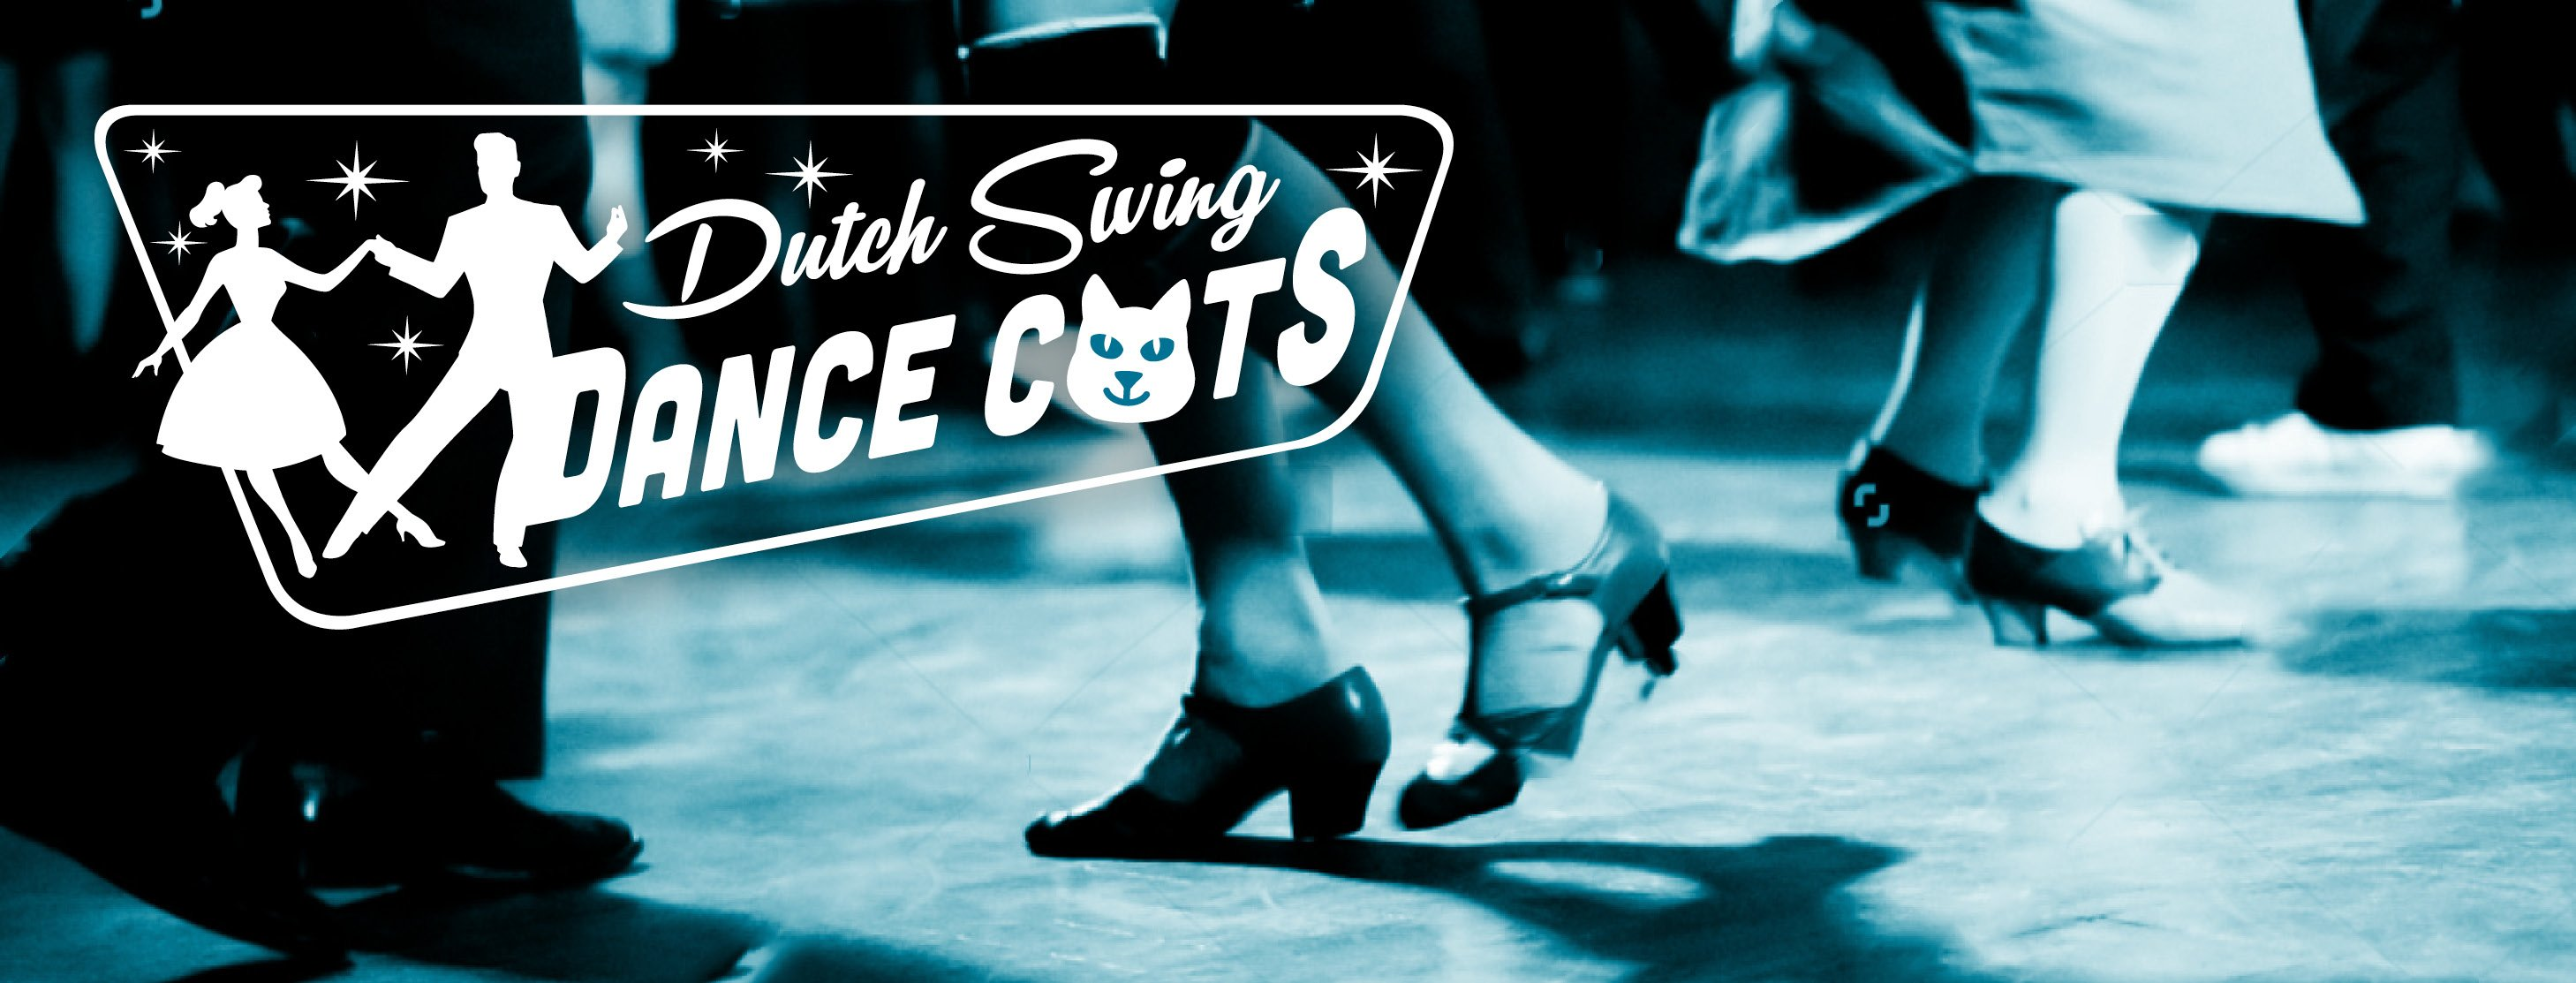 dutch swing dance cats dansschool swing boogie woogie lindy hop rock and roll blues dansen hoorn